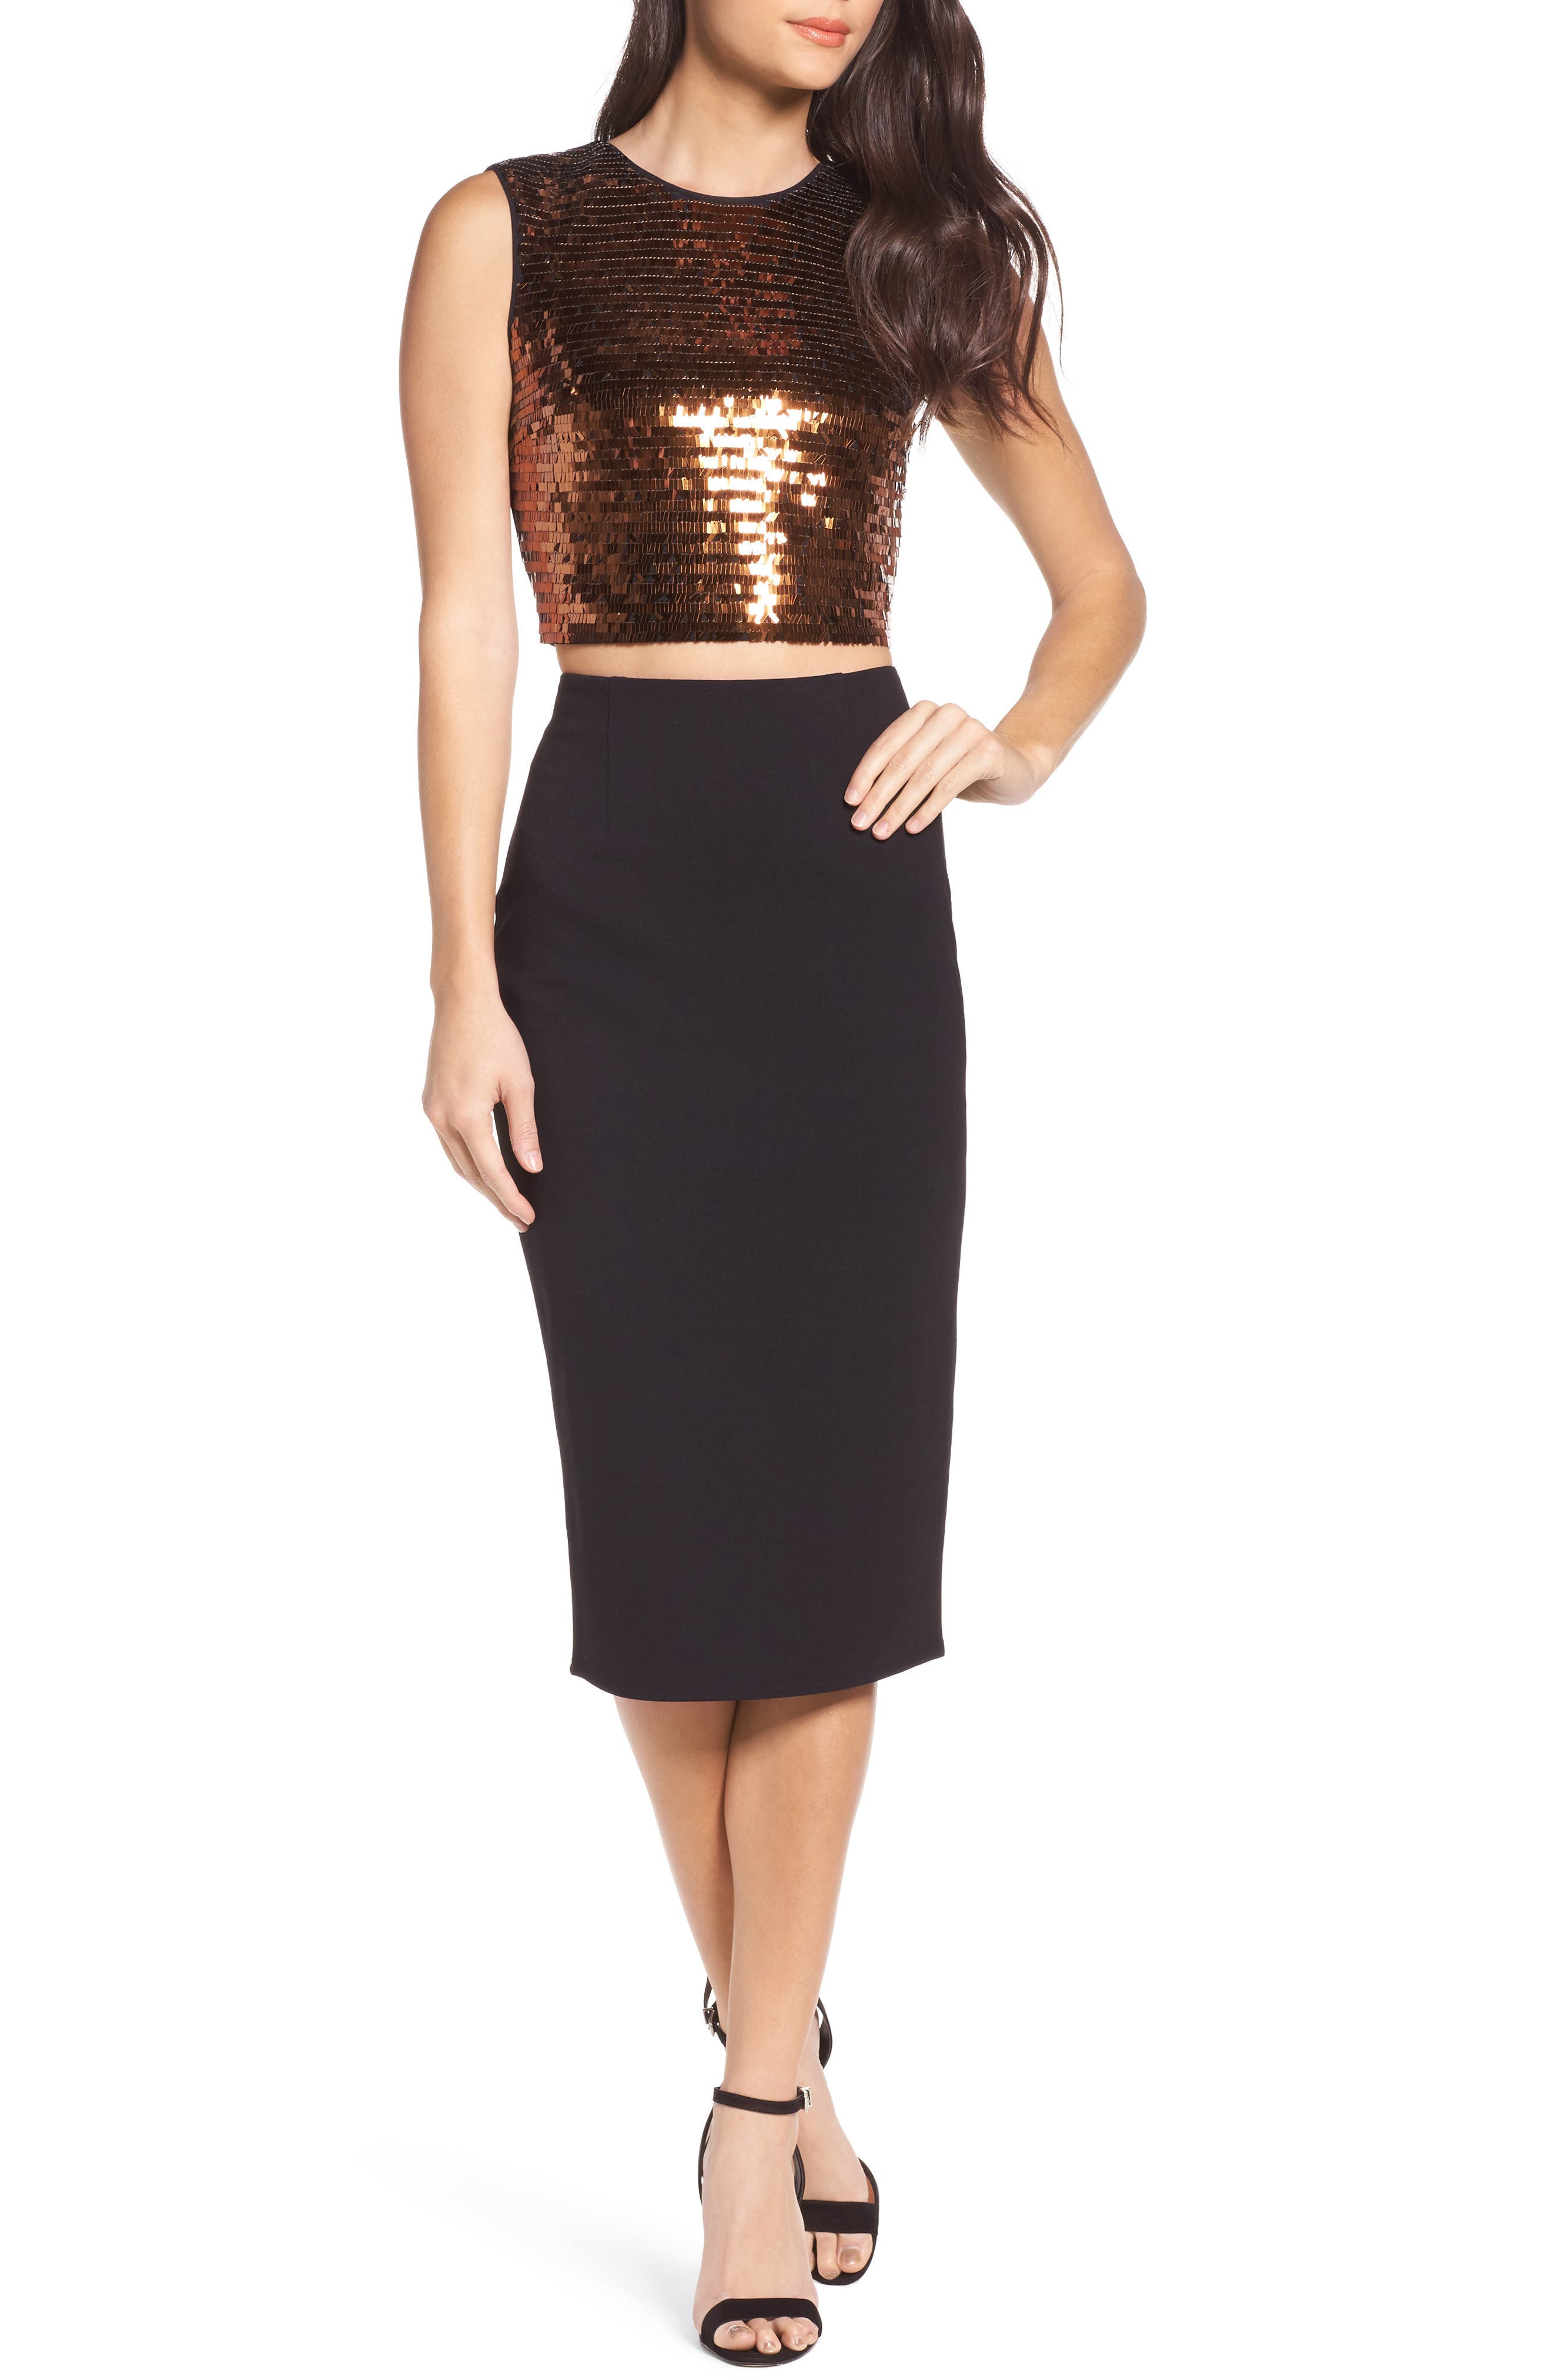 Disco Ball Two-Piece Dress,                             Main thumbnail 1, color,                             Copper Sequin